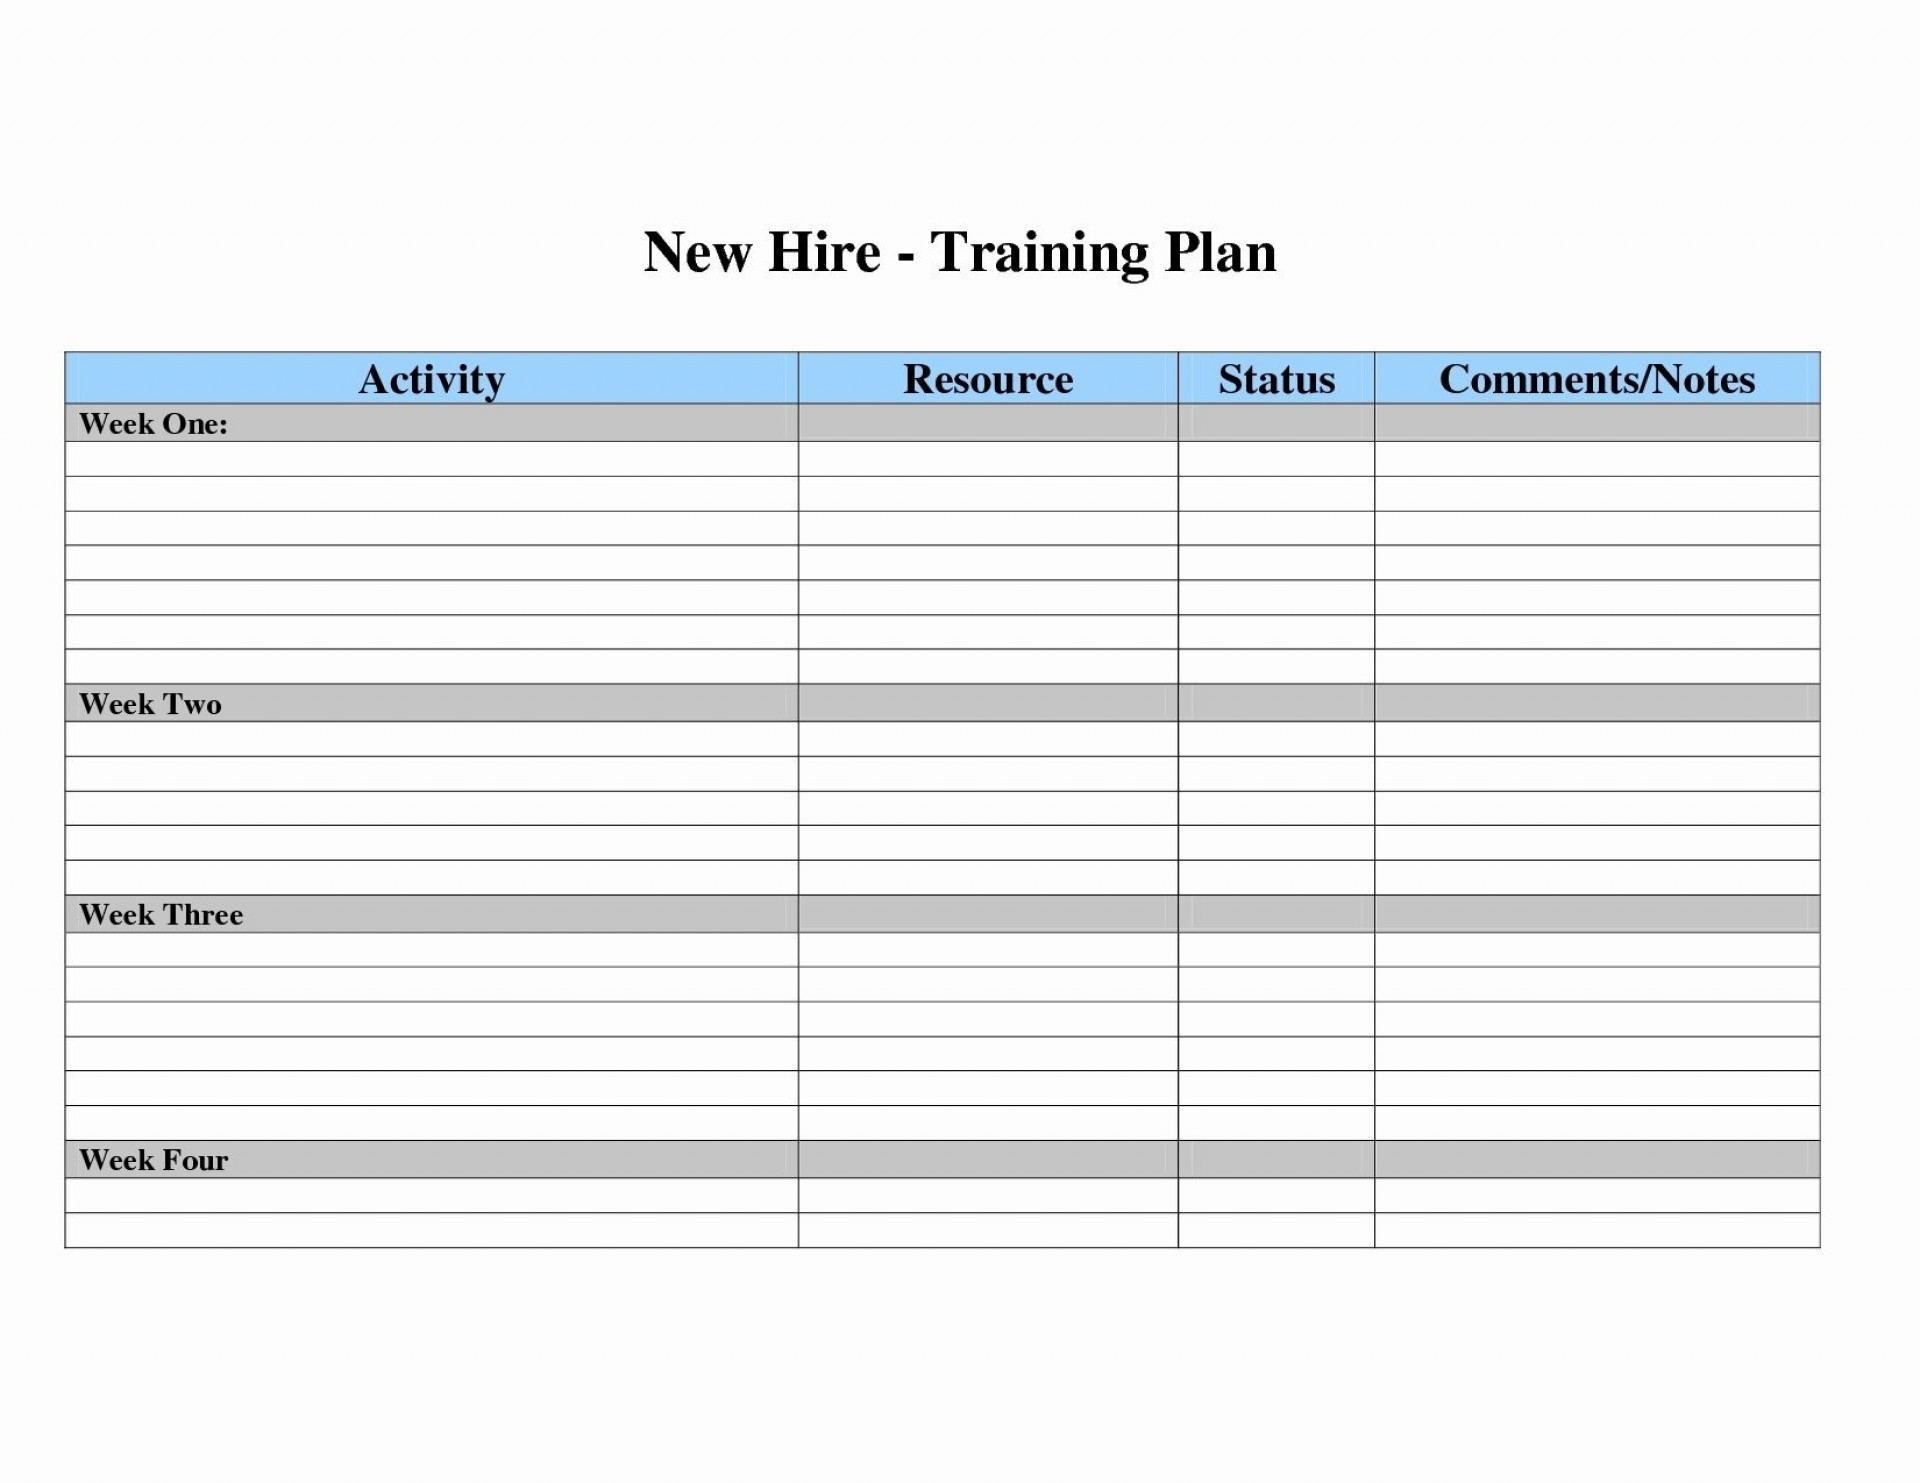 004 Frightening Training Plan Template Excel Image  Schedule Download Calendar Free1920